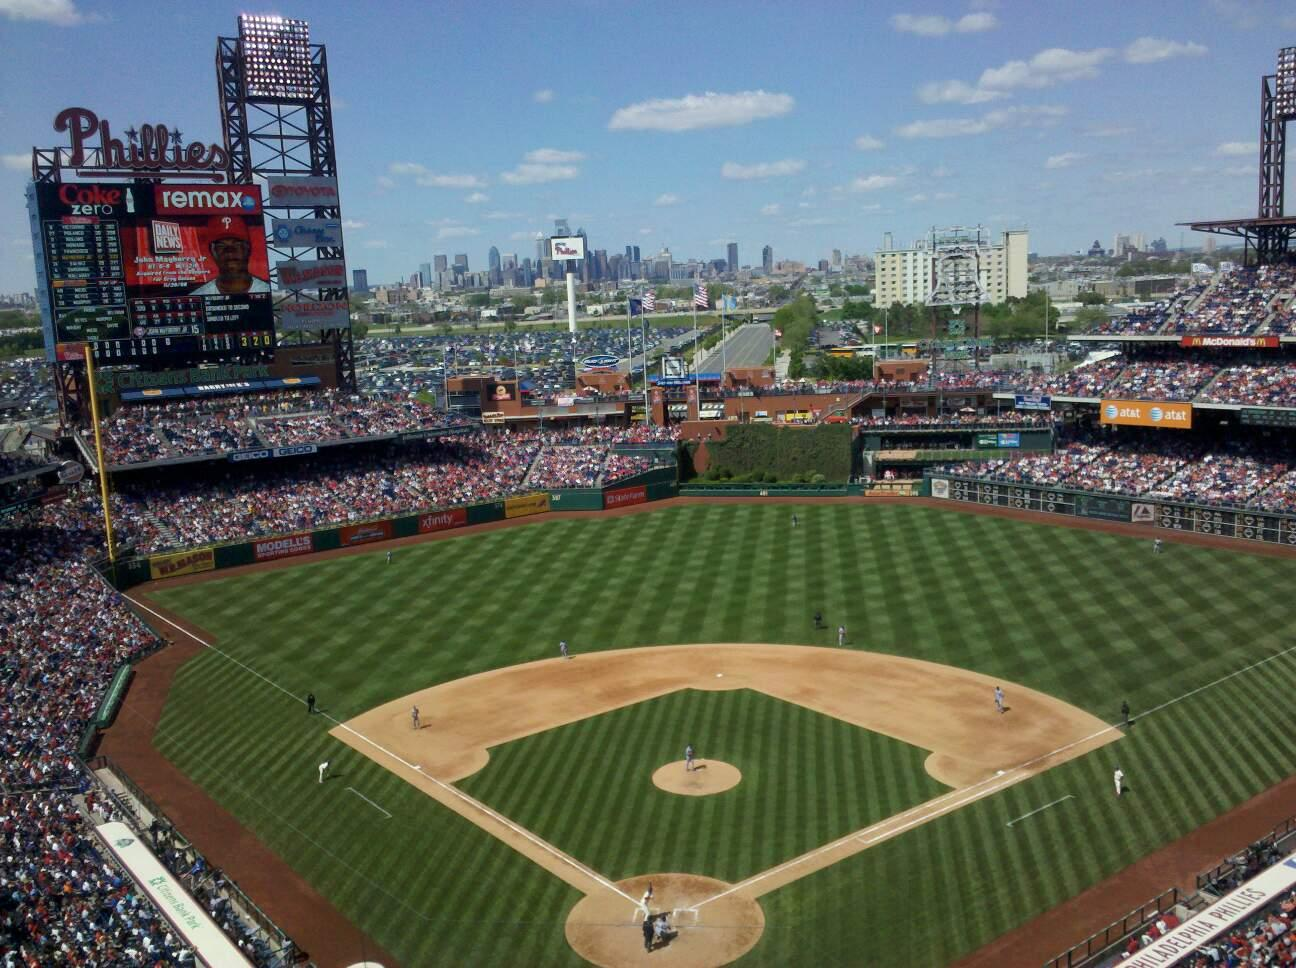 Citizens Bank Park Section 420 Row 8 Seat 9